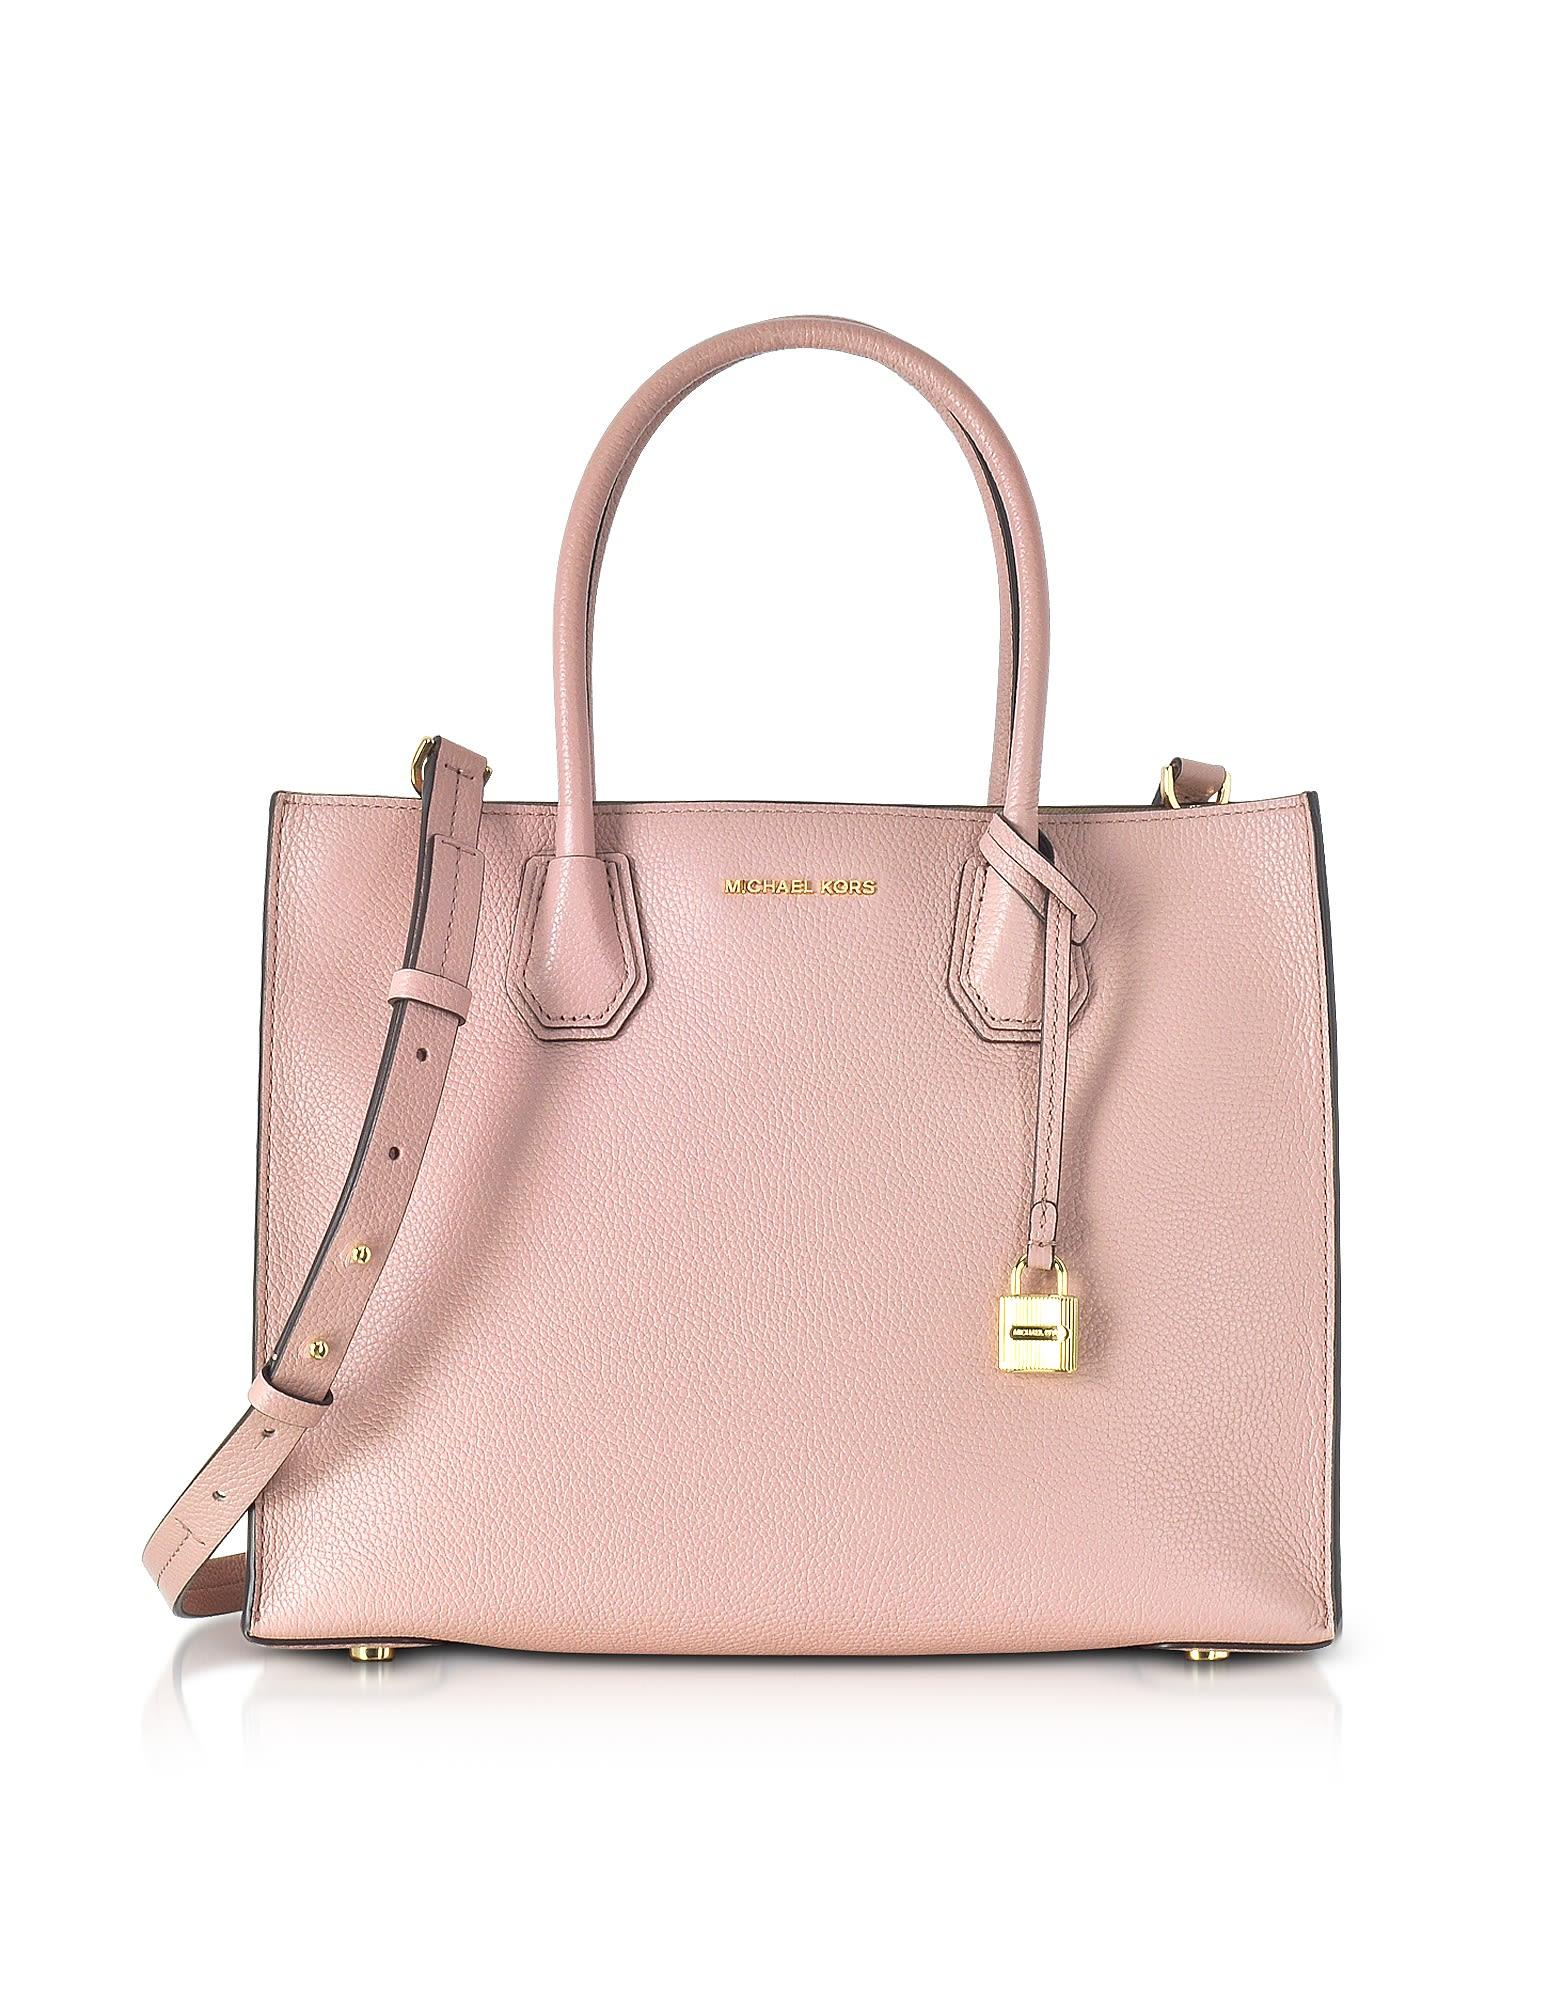 84ae4bad948d14 Michael Kors Mercer Large Leather Tote In Pale Pink | ModeSens